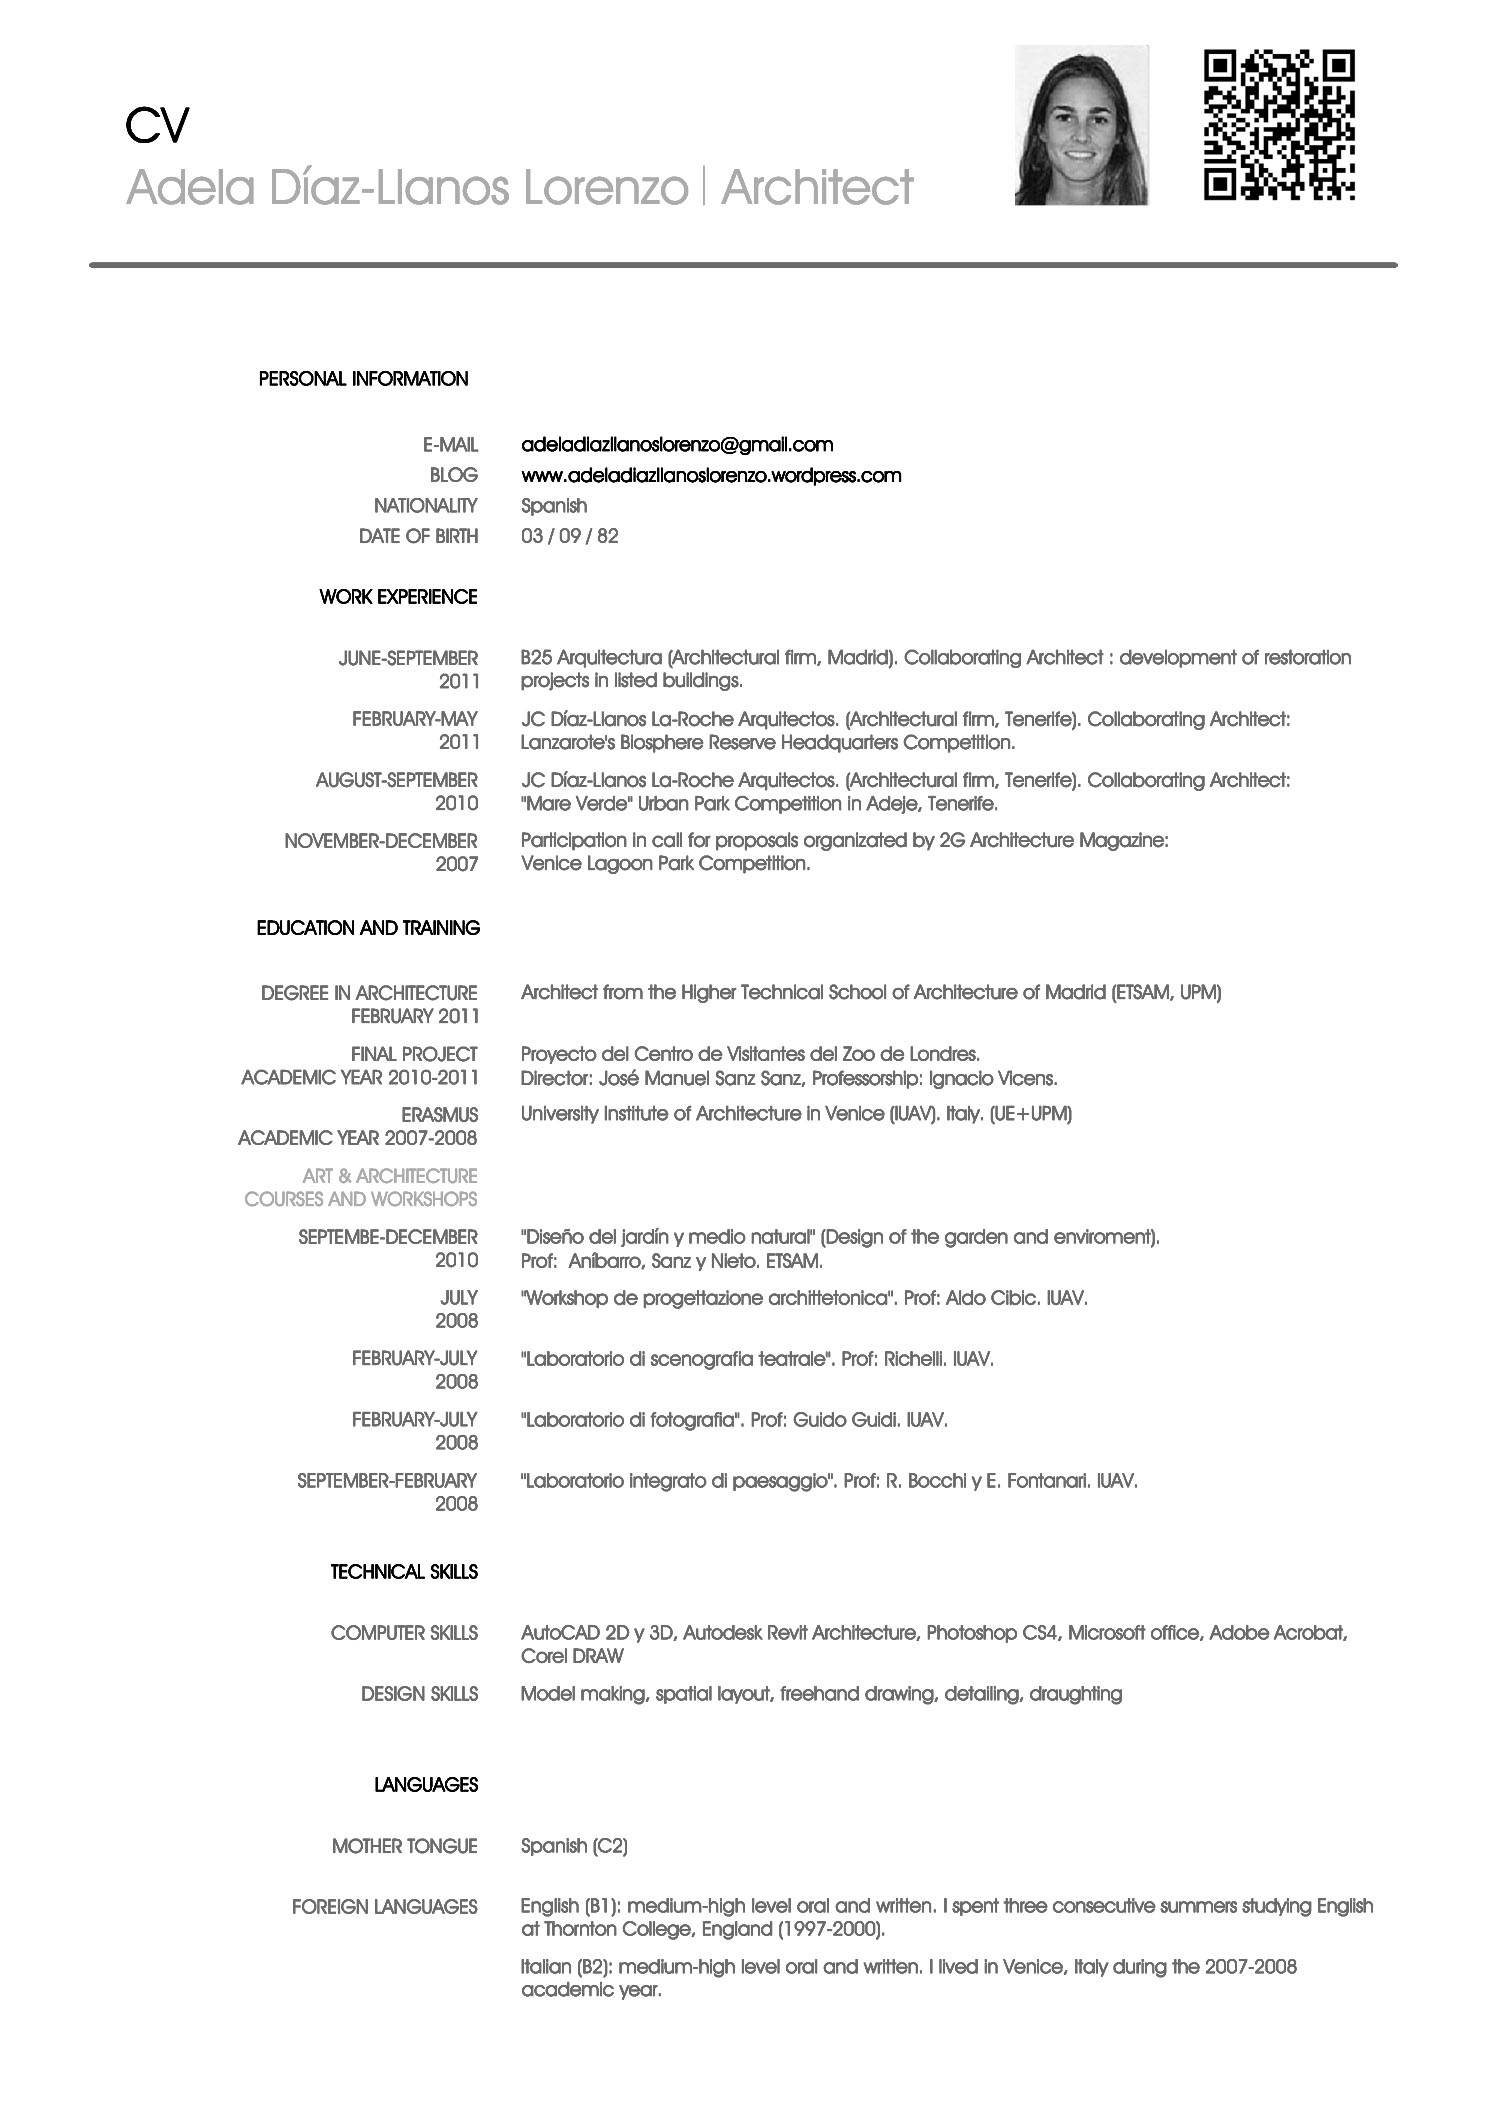 cv for architecture training service resume cv for architecture training the top architecture rsumcv designs archdaily cv english adela d237 az